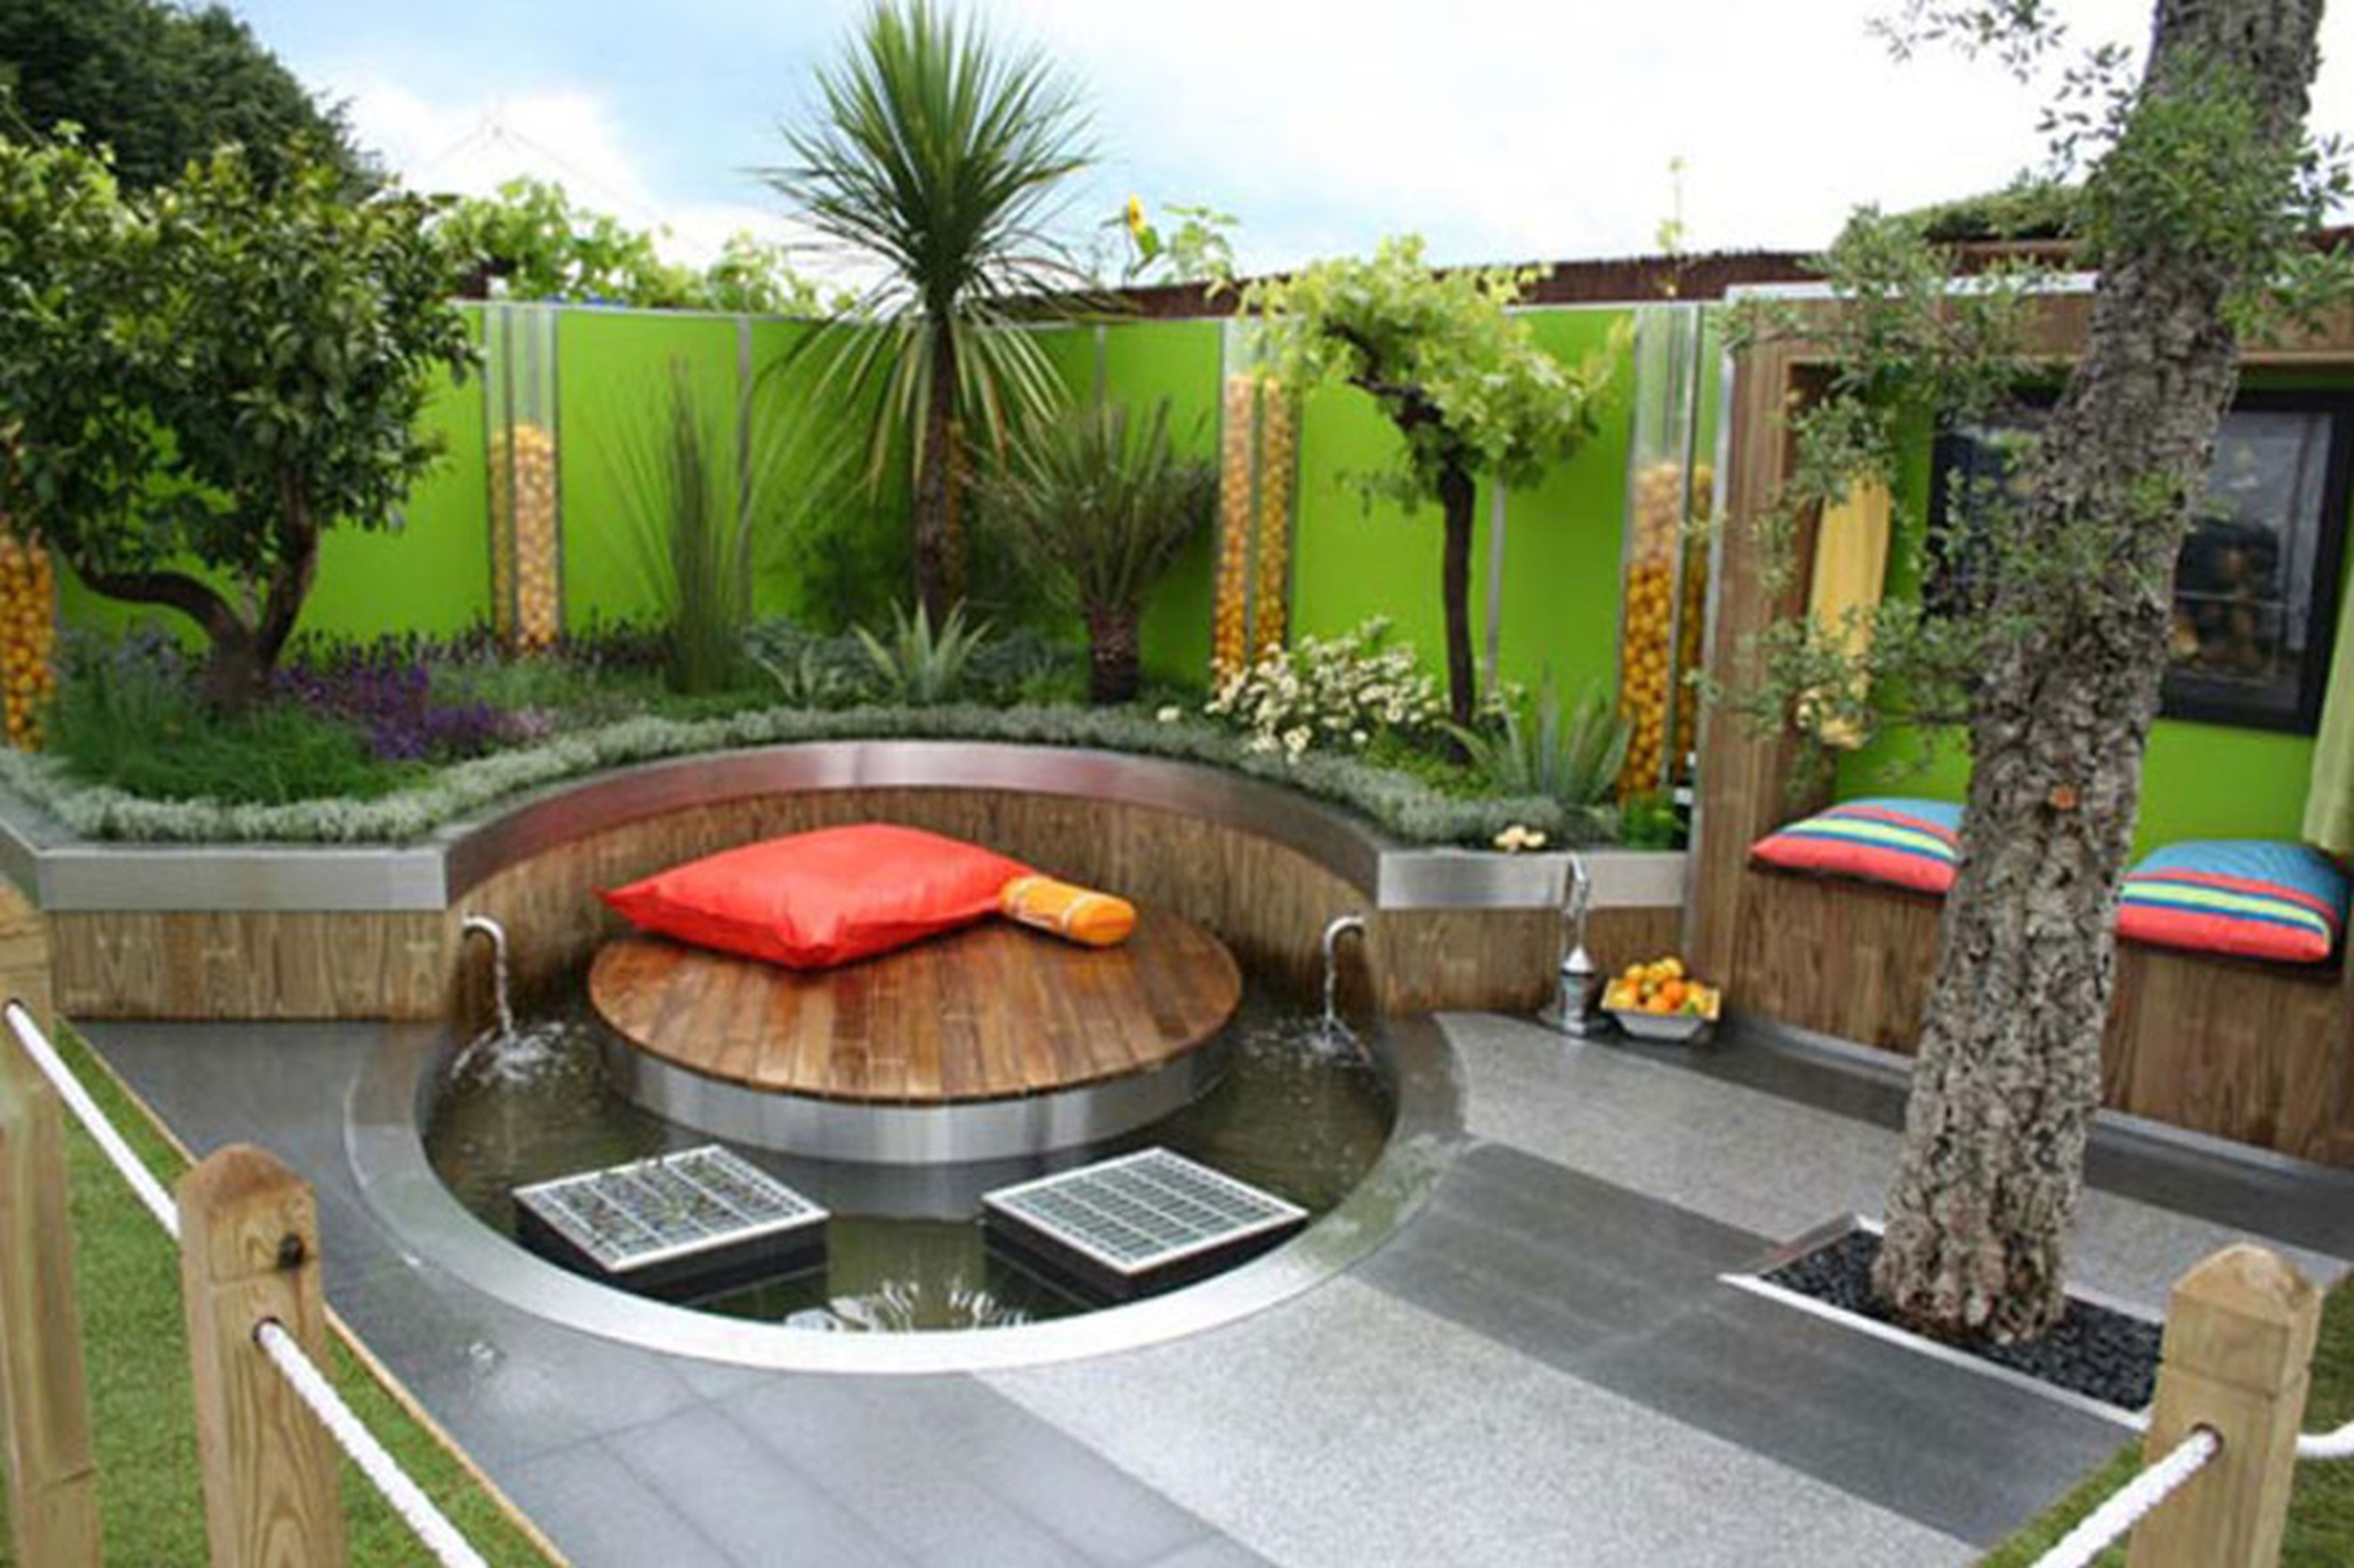 Backyard Ideas Cheap Add Planters To Your Landscape Landscaping with Cool Backyard Garden Ideas